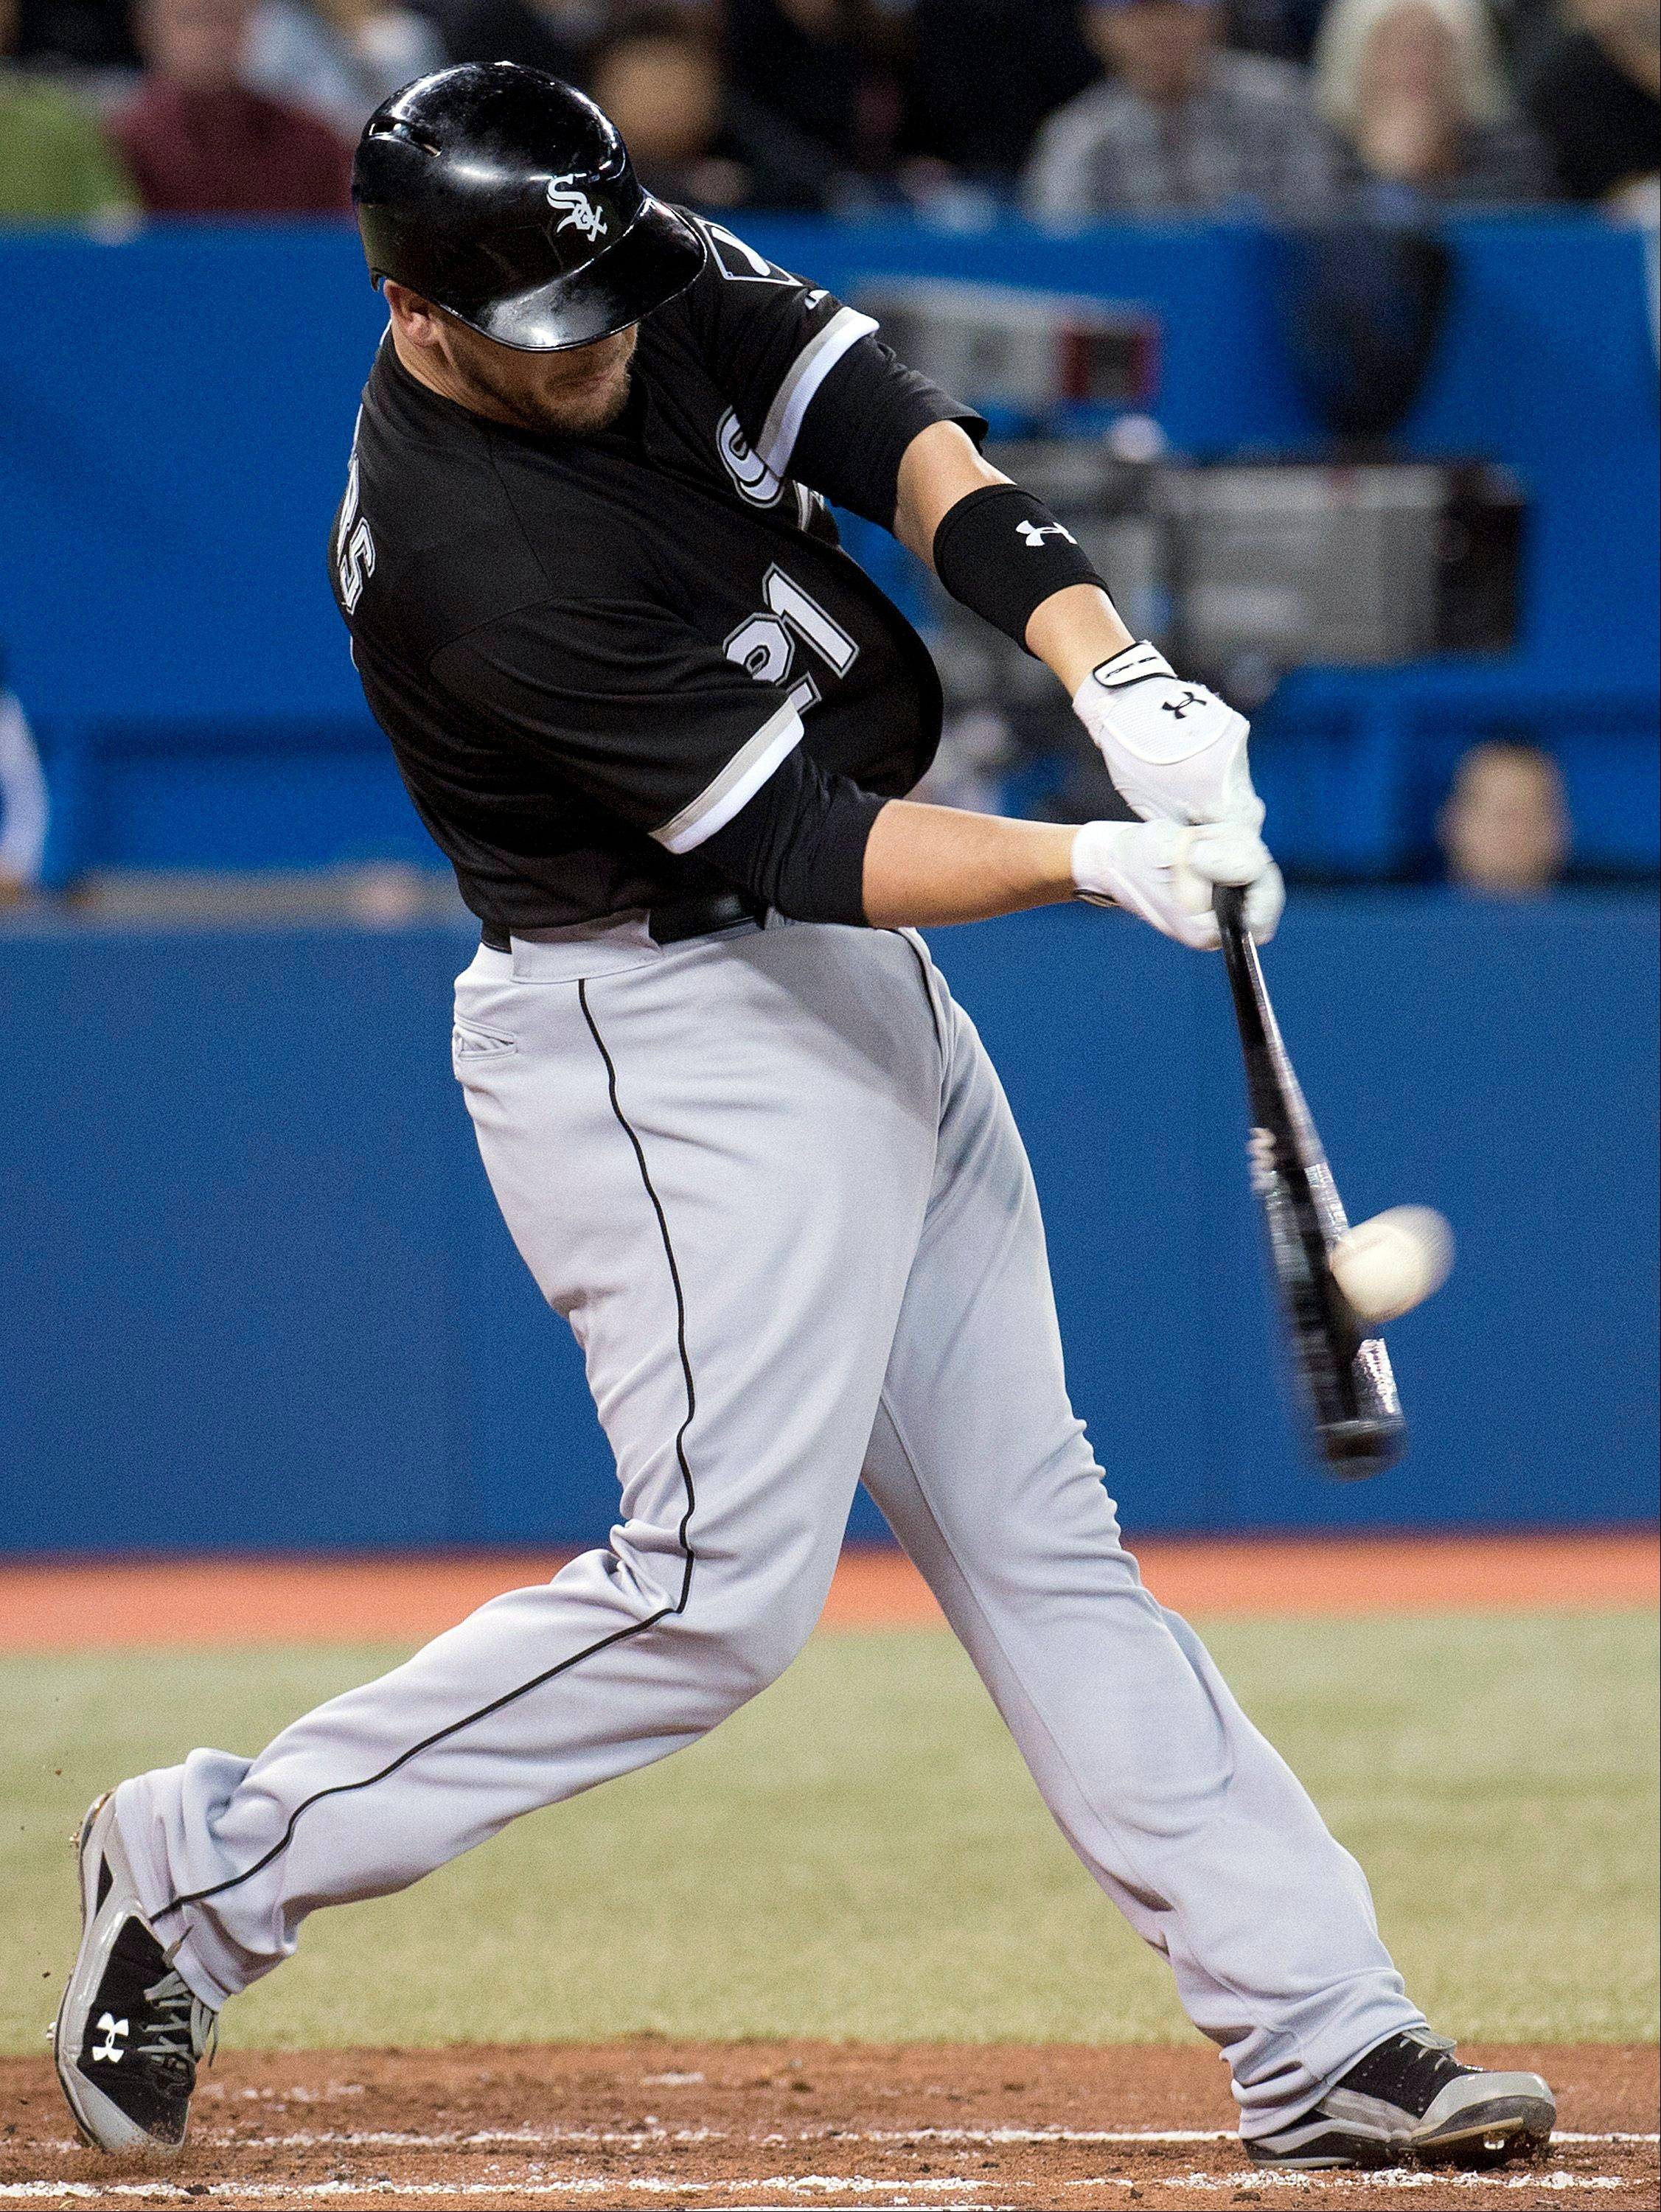 The White Sox' Tyler Flowers blasts a 3-run homer in the second inning Wednesday against the Blue Jays in Toronto.